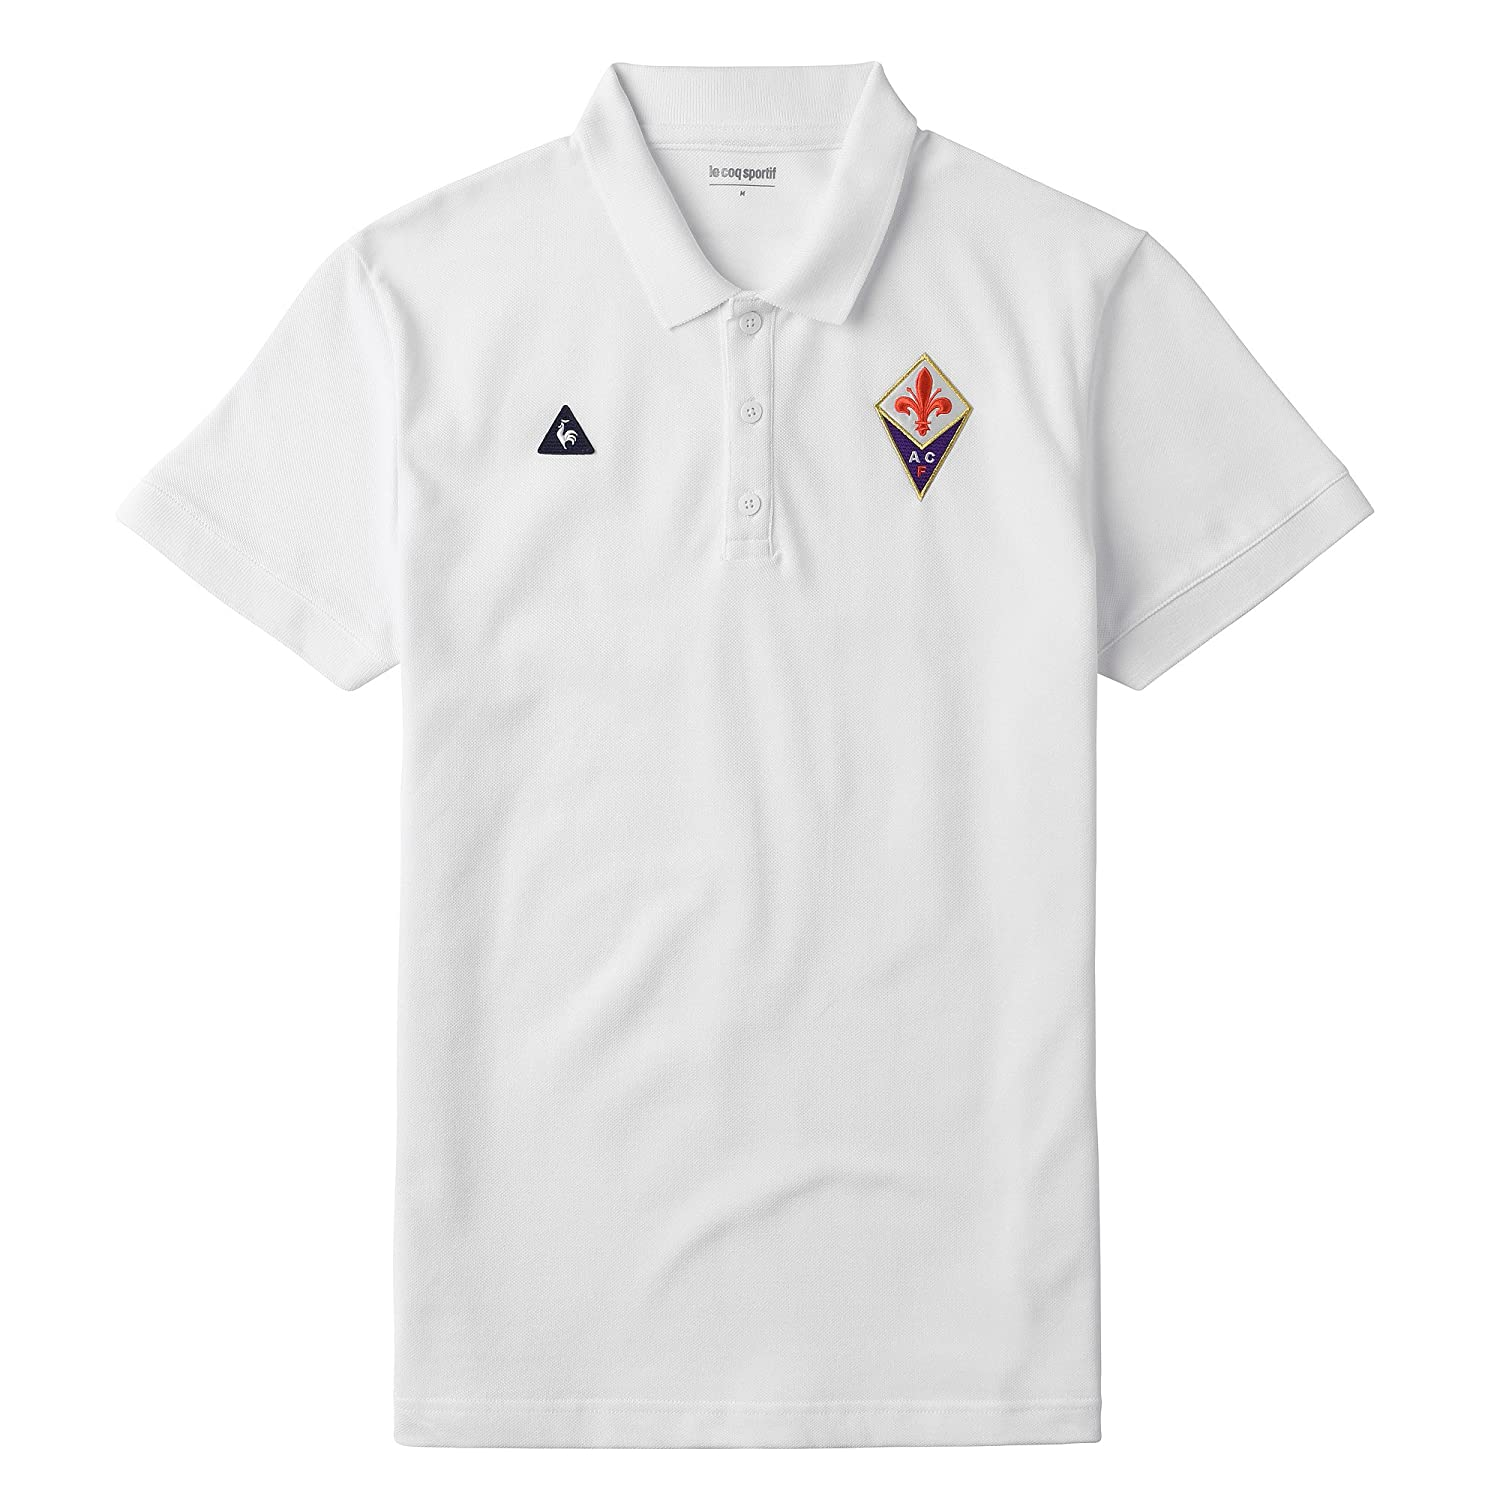 Tenue pres Players Polo SS optical white 15/16 Fiorentina Le Coq ...